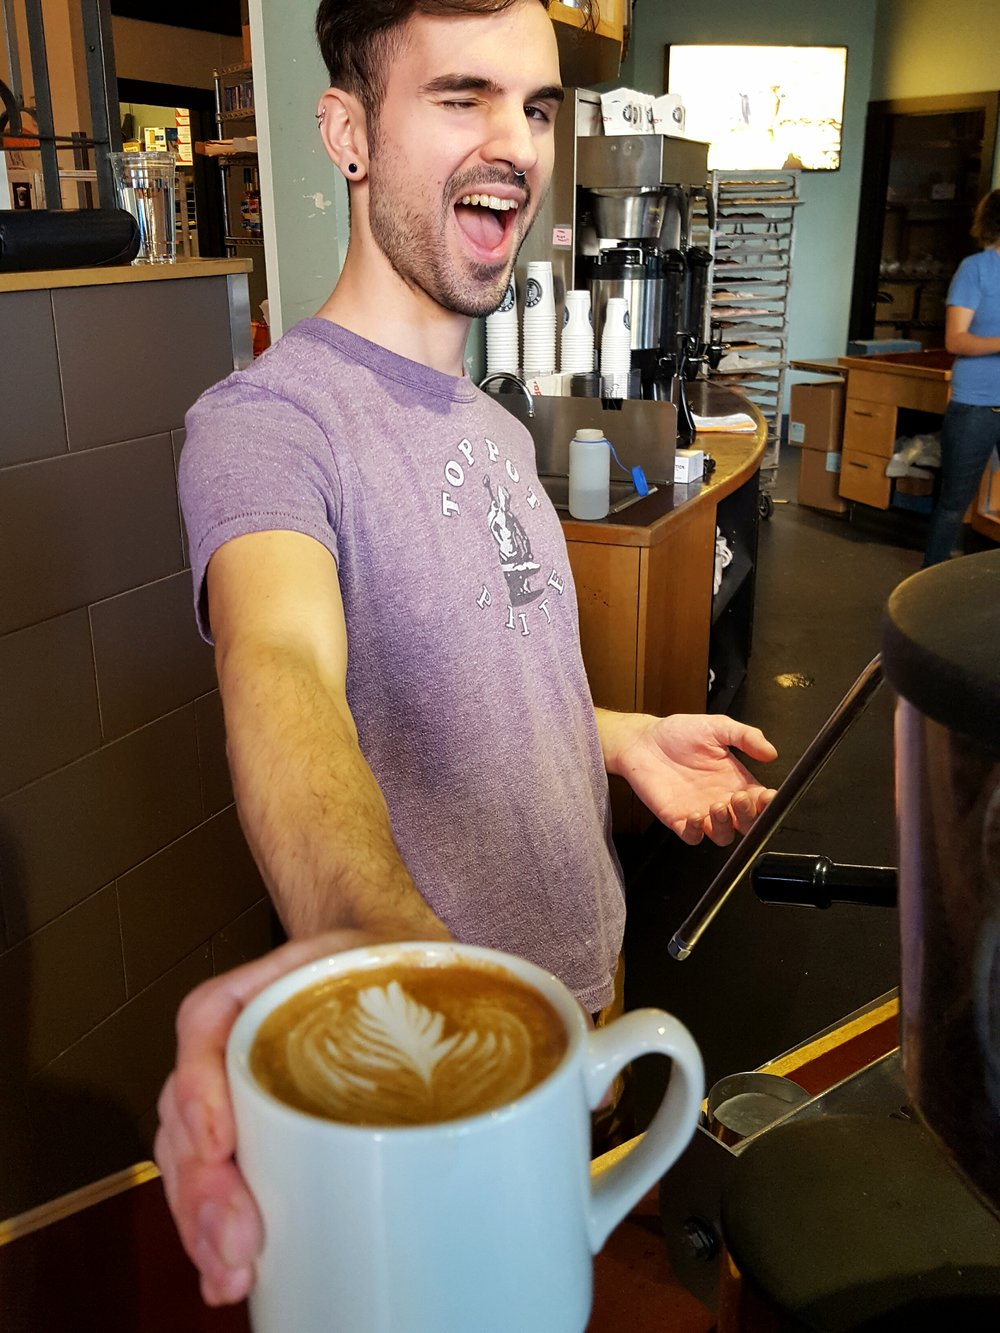 Top Pot barista Christopher smiles